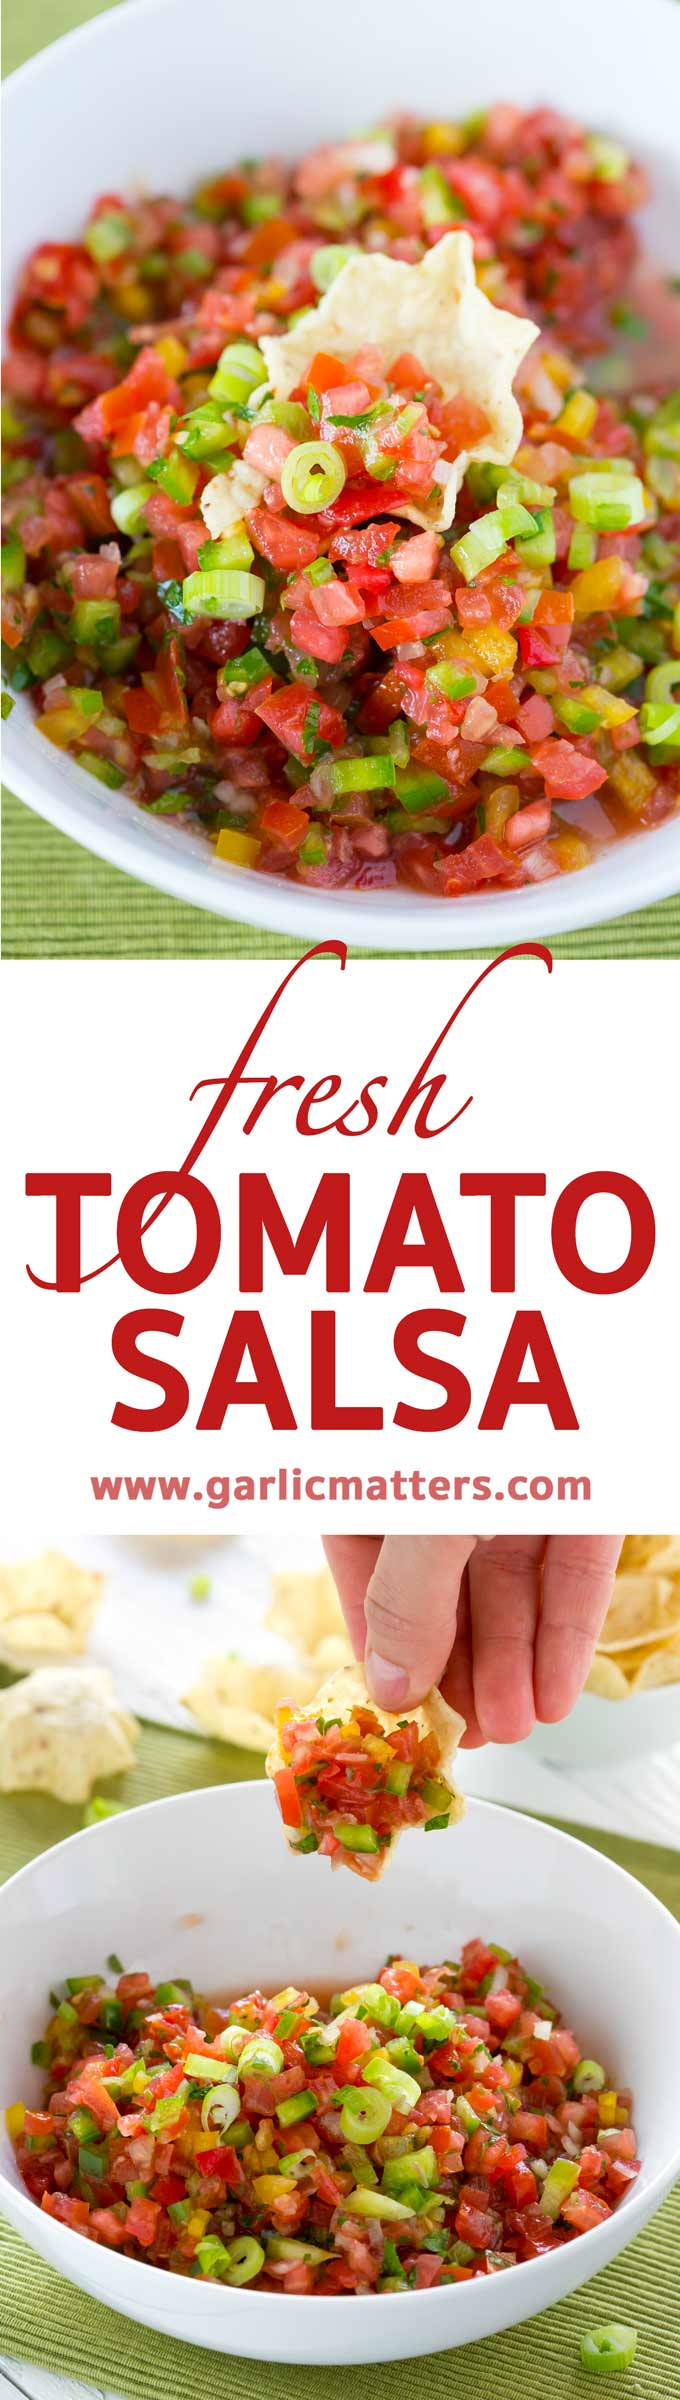 This Fresh Tomato Salsa Recipe is the best for any Springtime party success. Easy, delicious, vegan, ready in 15 minutes crowd pleasing dip.